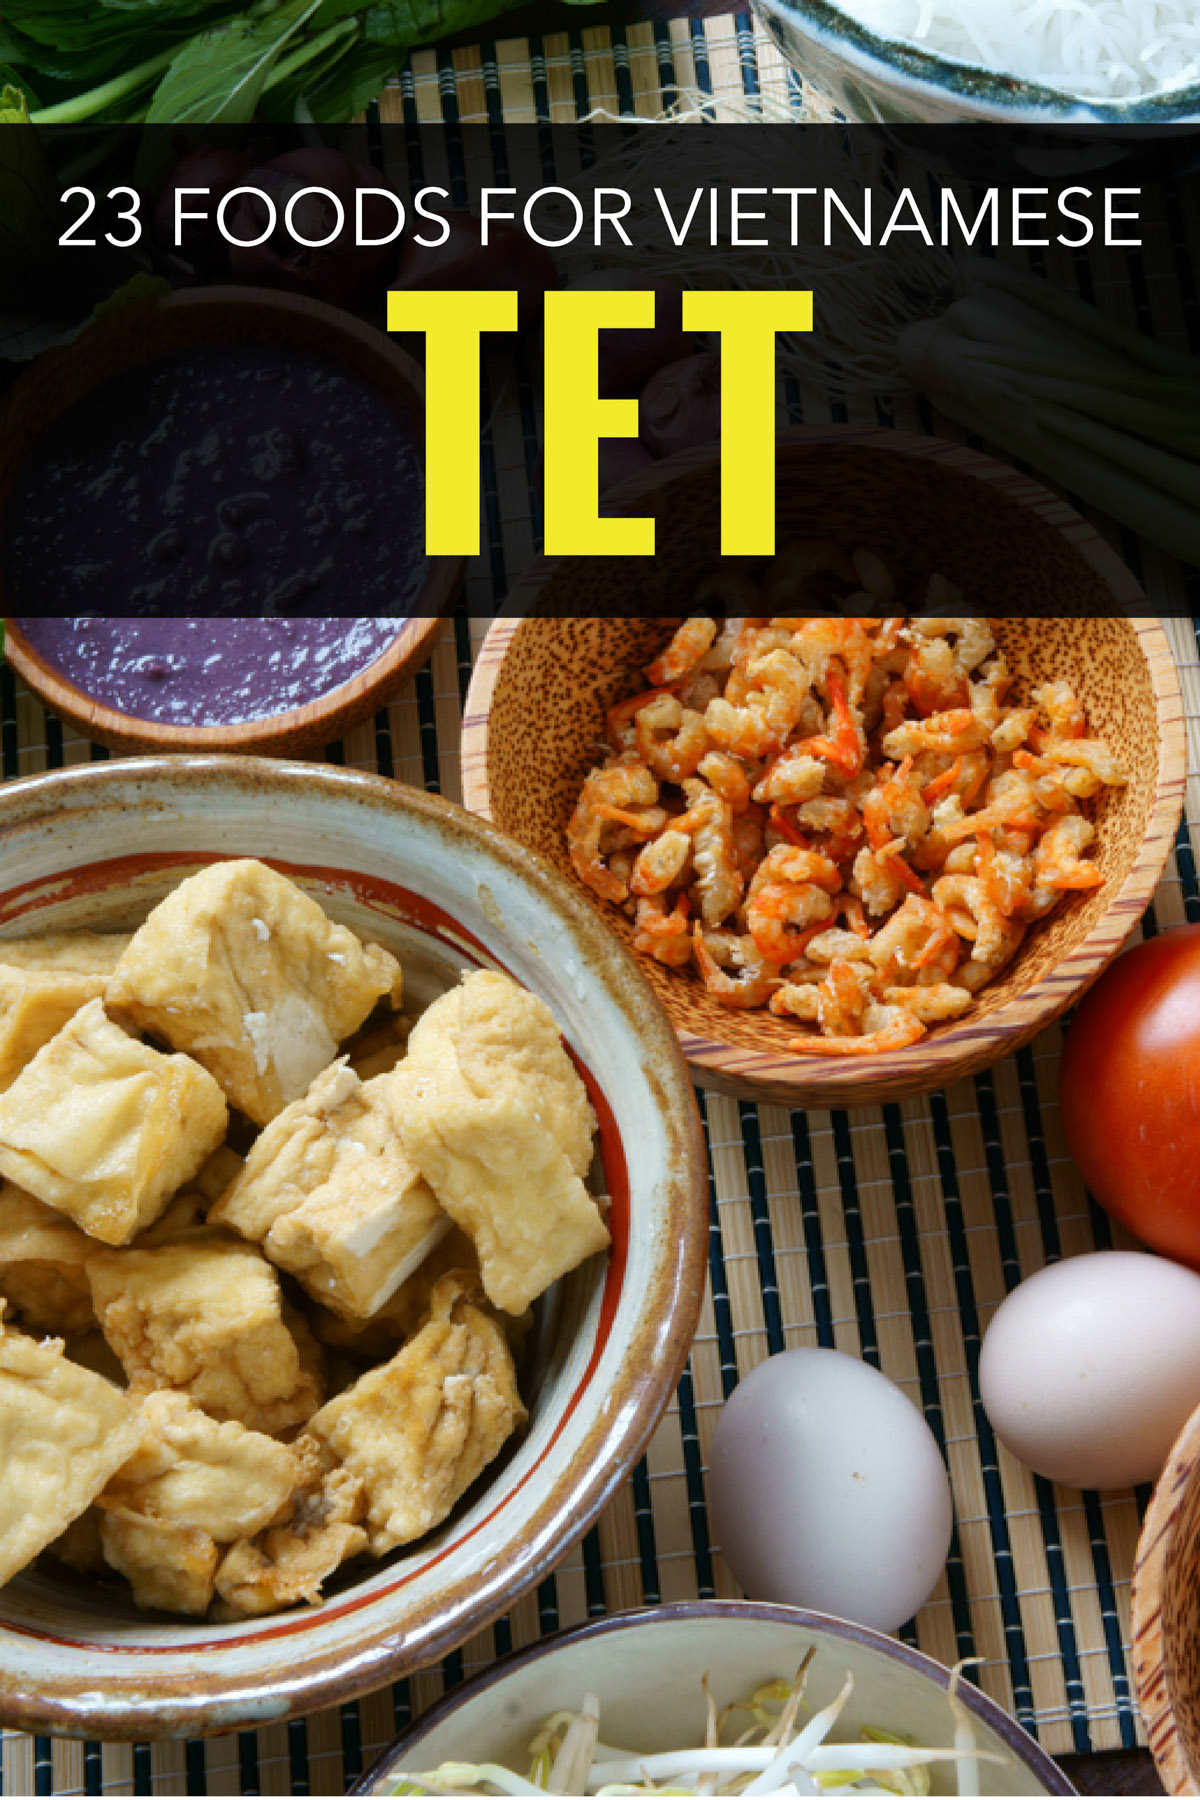 Celebrate Tet with Food! Here are 23 Vietnamese foods you should try during Tet, also known as the Lunar New Year.